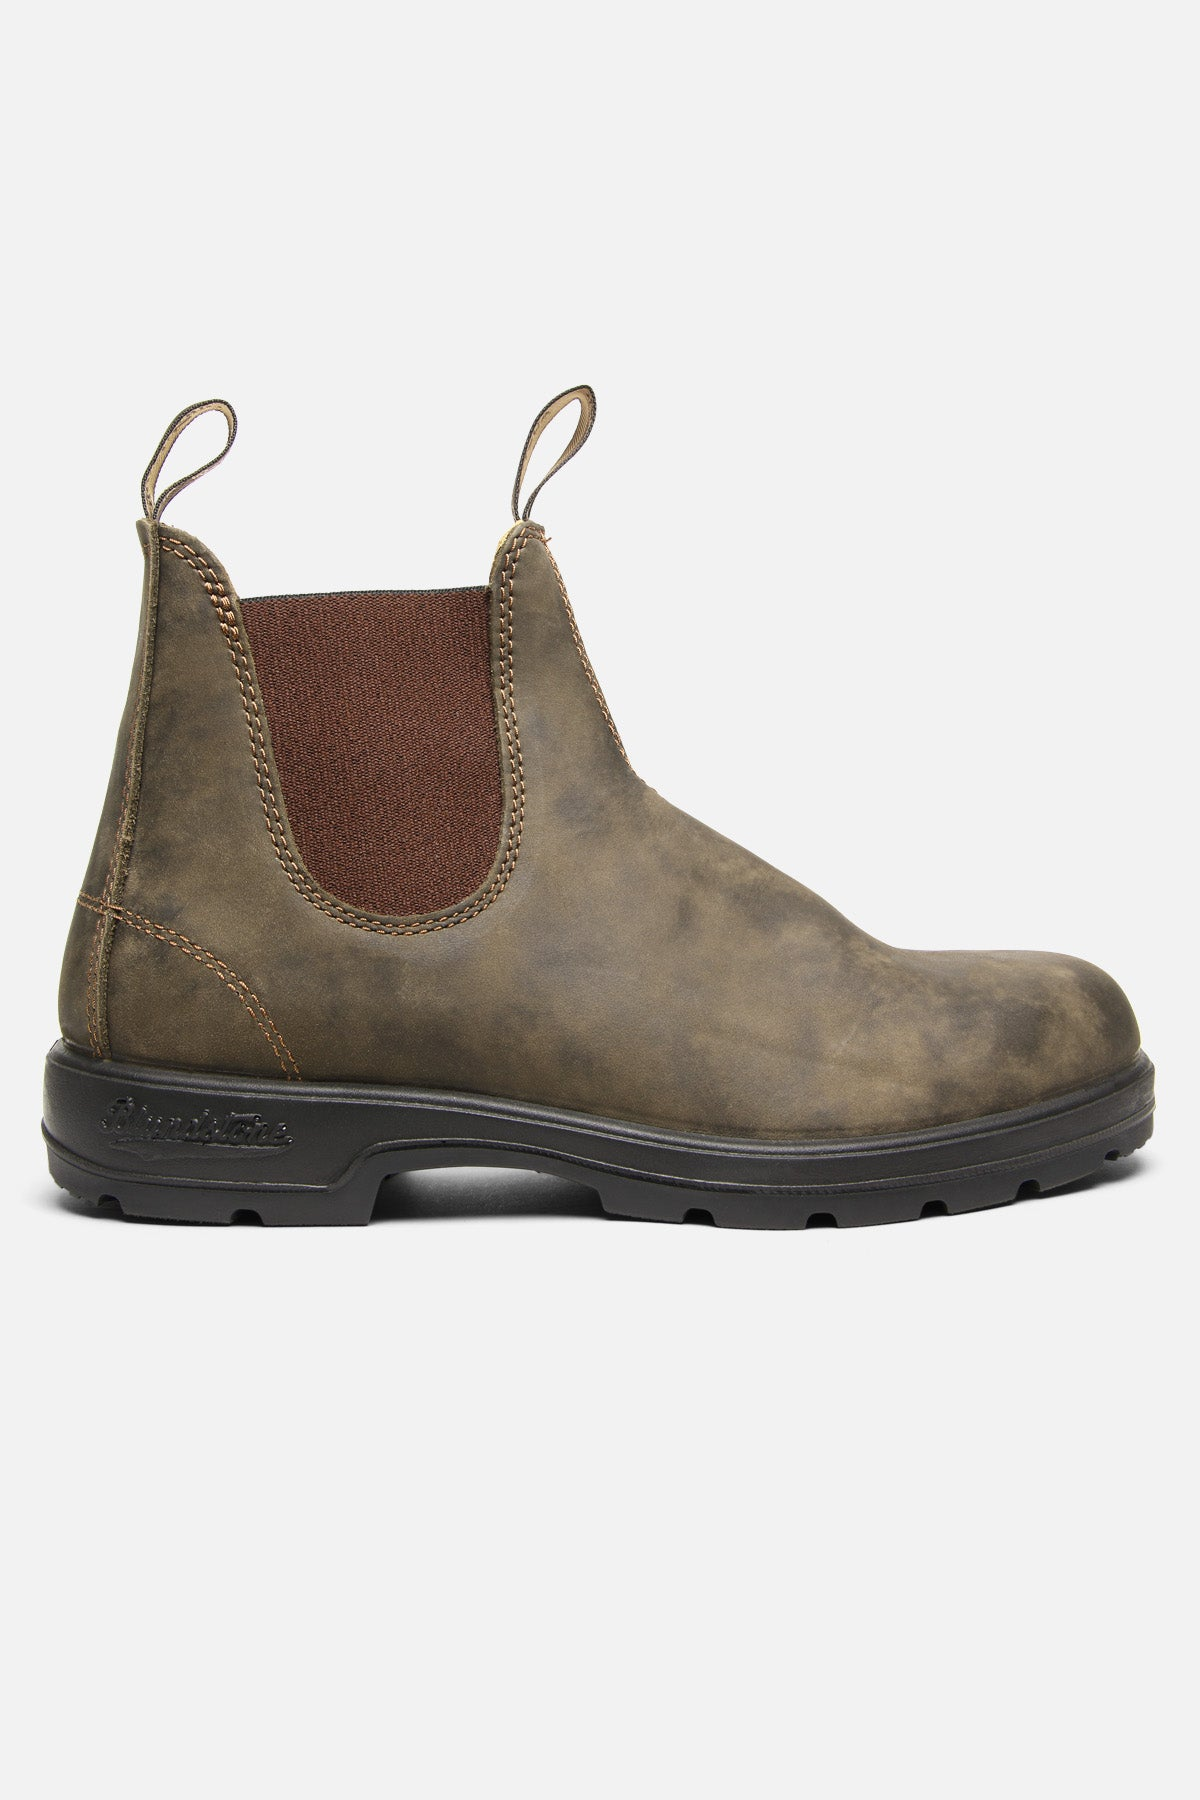 BLUNDSTONE SUPER 550 IN RUSTIC BROWN - Fortune Goods